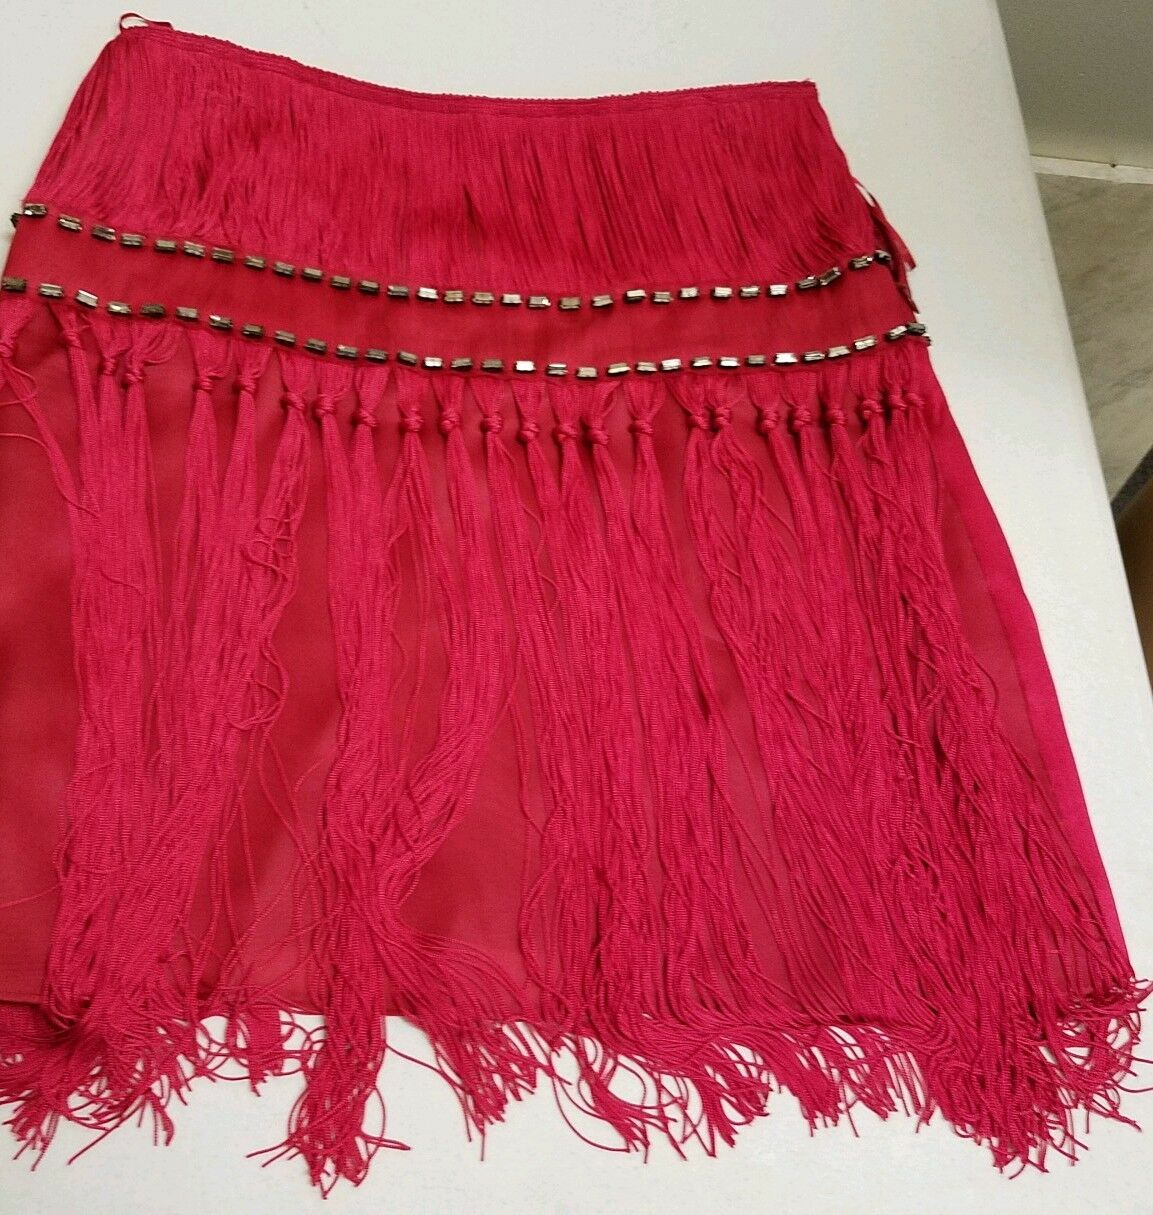 ALBERTA FERRETTI Skirt Red Silk with Fringe & Crystals Sz 40 US 4 retail  2230